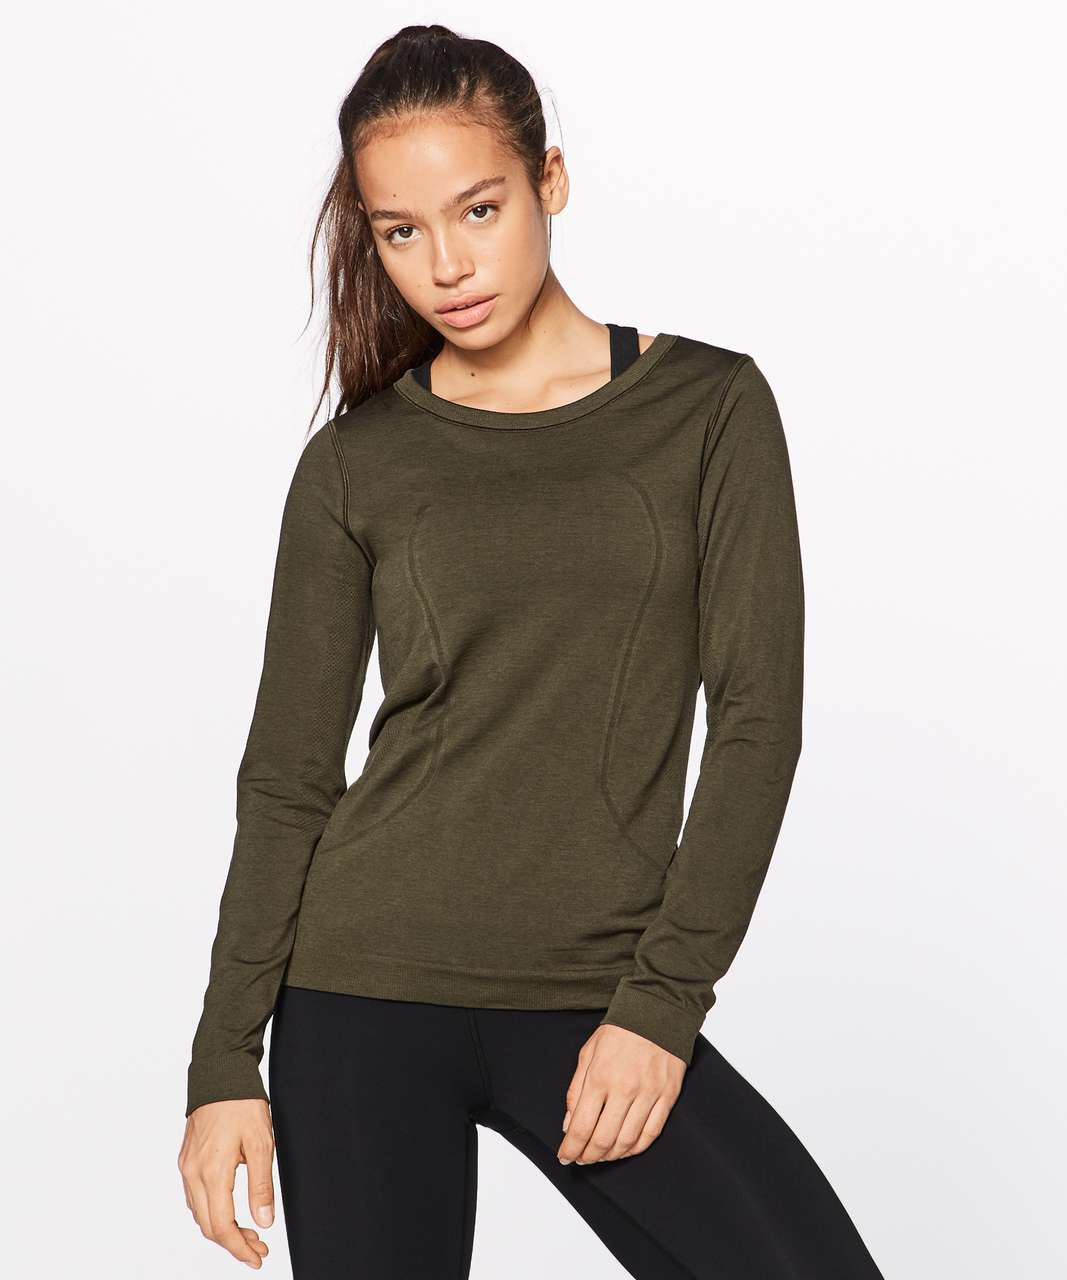 Lululemon Swiftly Tech Long Sleeve (Breeze) (Relaxed Fit) - Dark Olive / Dark Olive